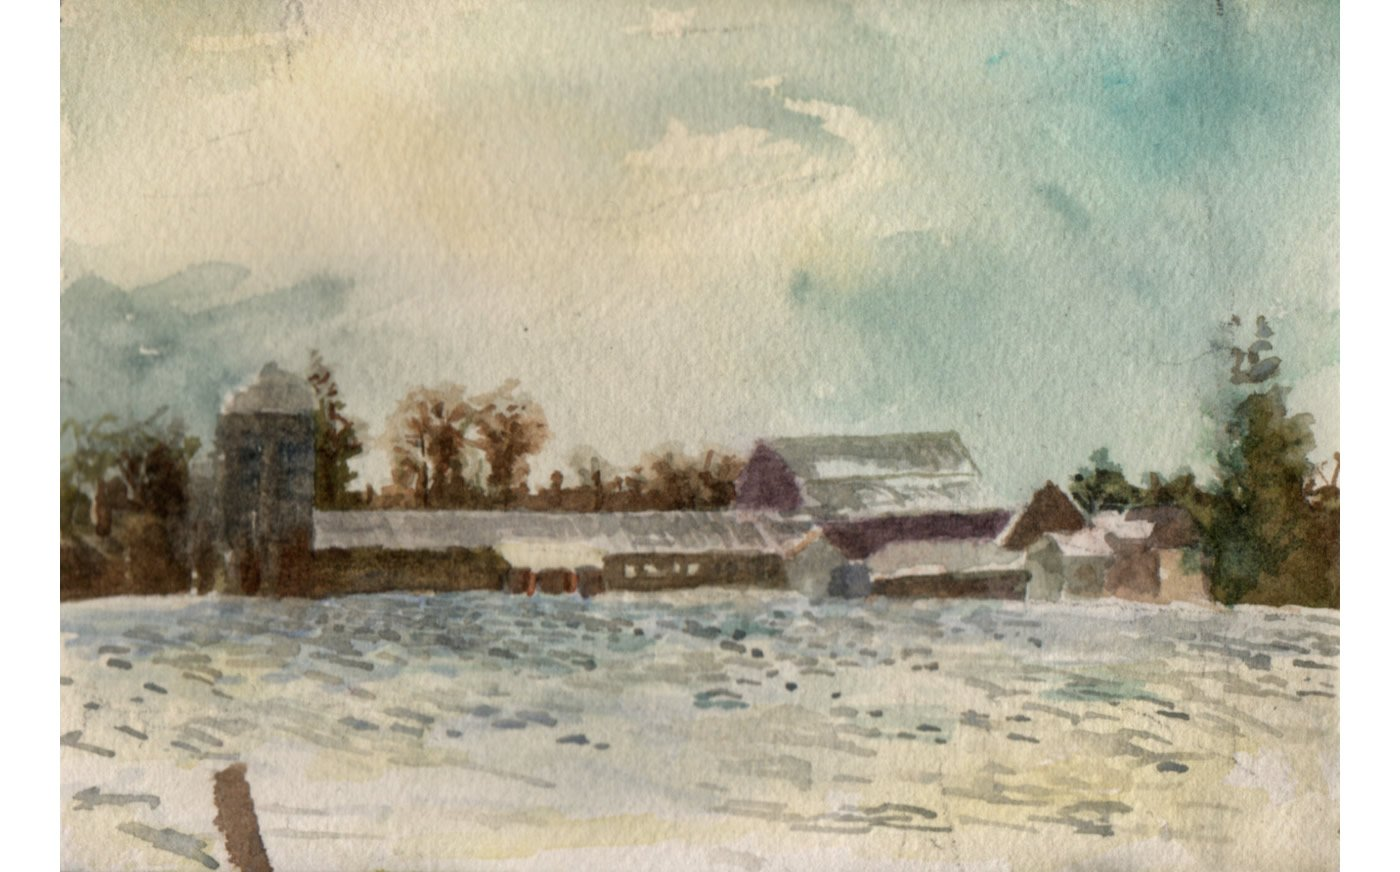 """Hartsbrook Farm from East Hadley Road Watercolor  4"""" x 6"""" (Matted and Framed, 9.5"""" x 11.5"""") by Matthew Mattingly $300.00"""